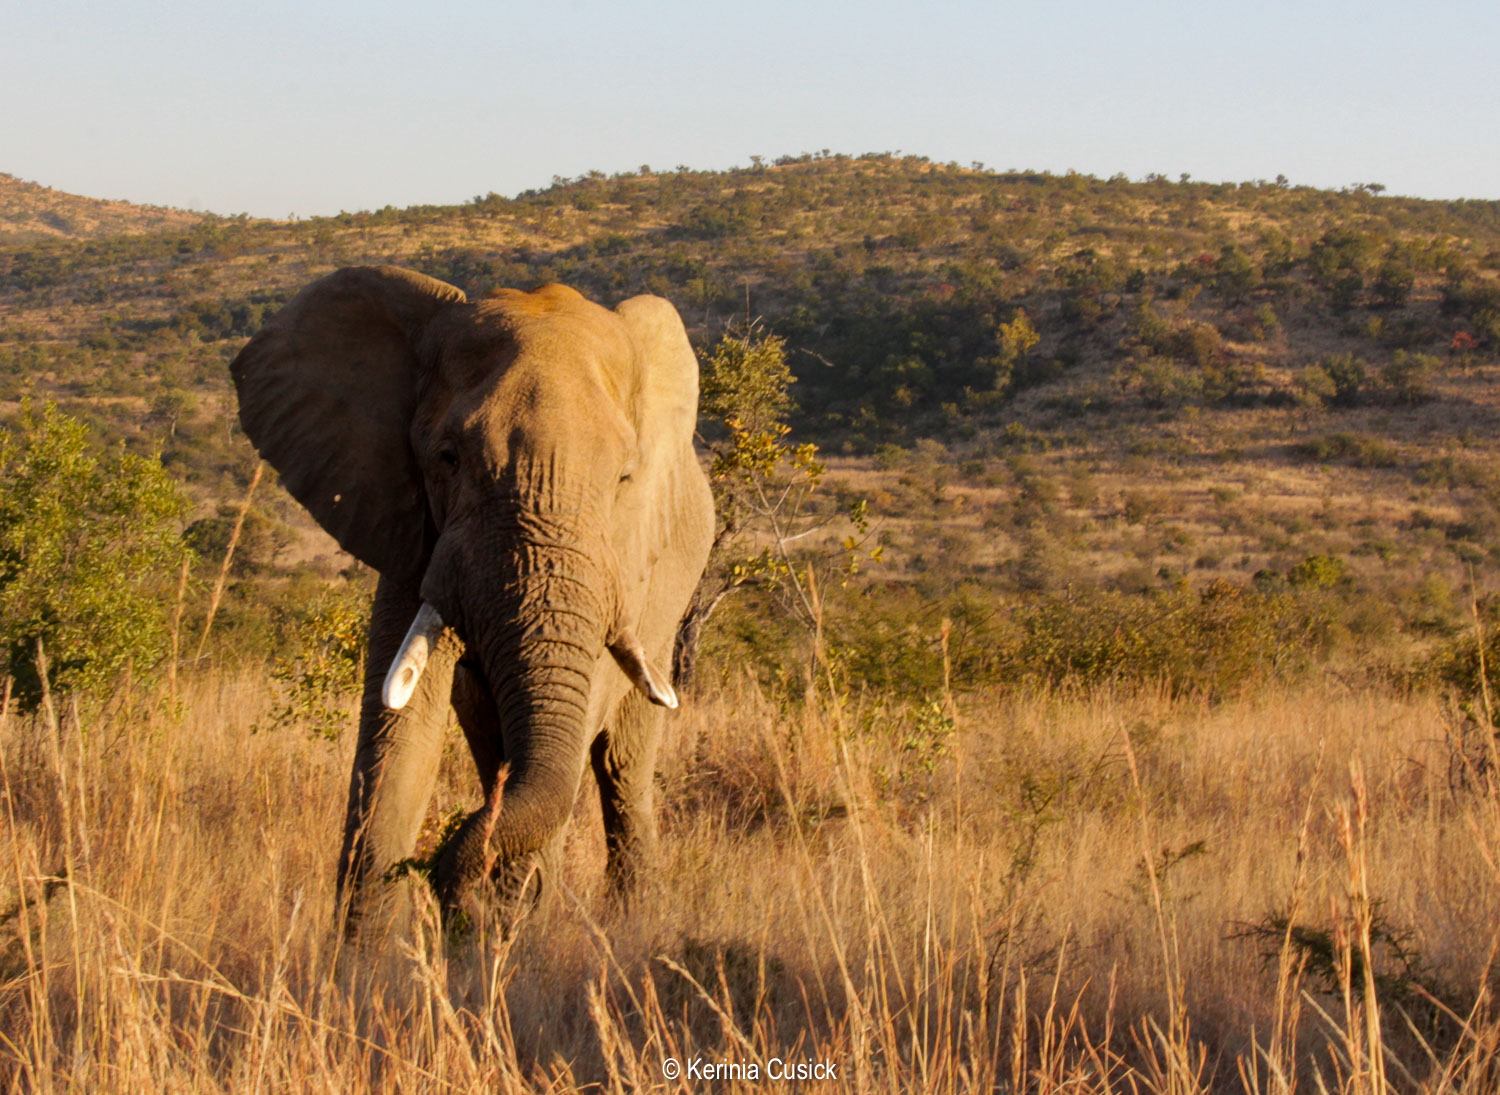 Elephants look best with their ears flared, wait for them to do that if possible